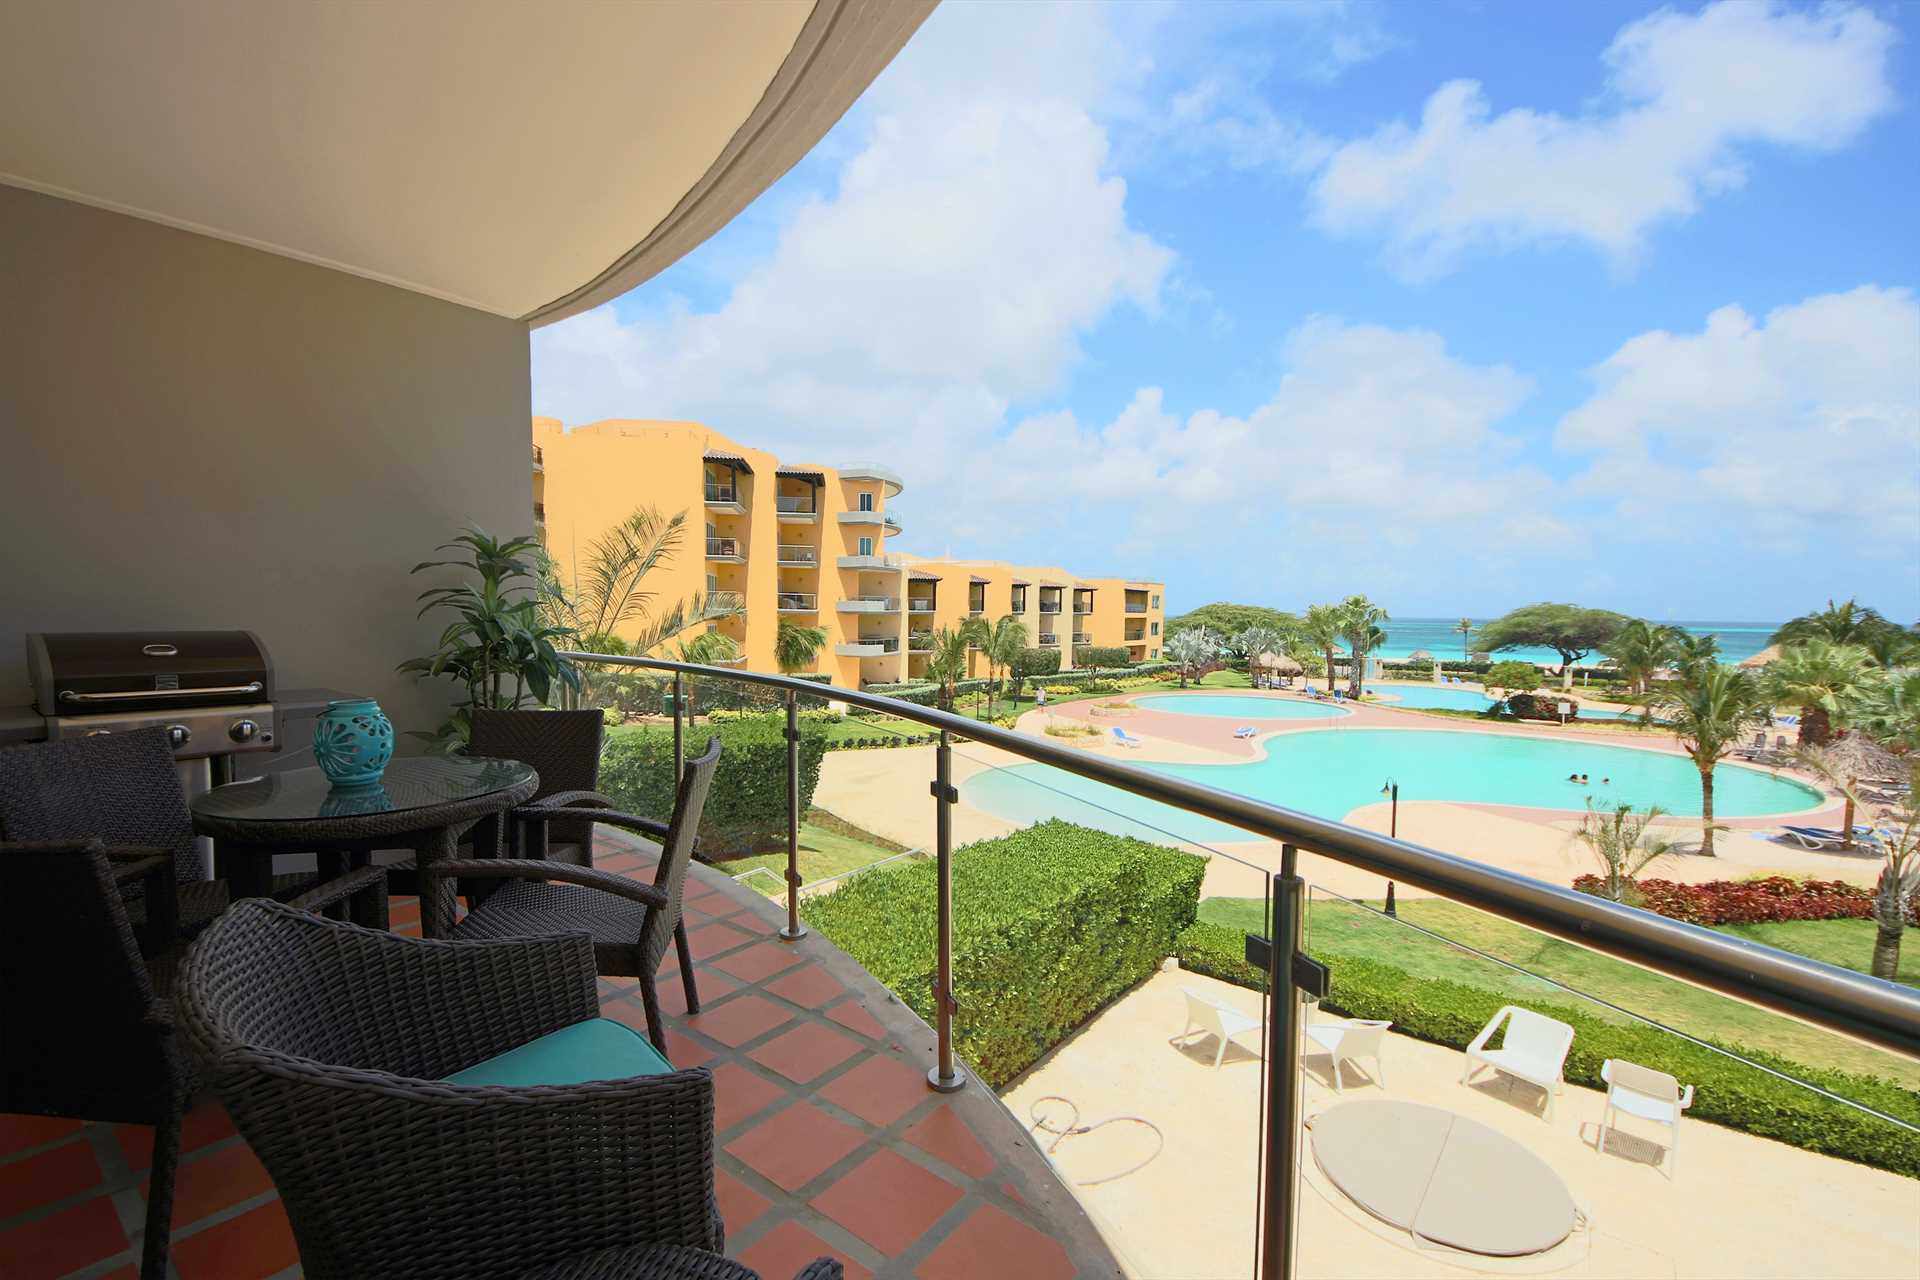 Welcome to your Summer View Two-bedroom condo at Oceania Resort